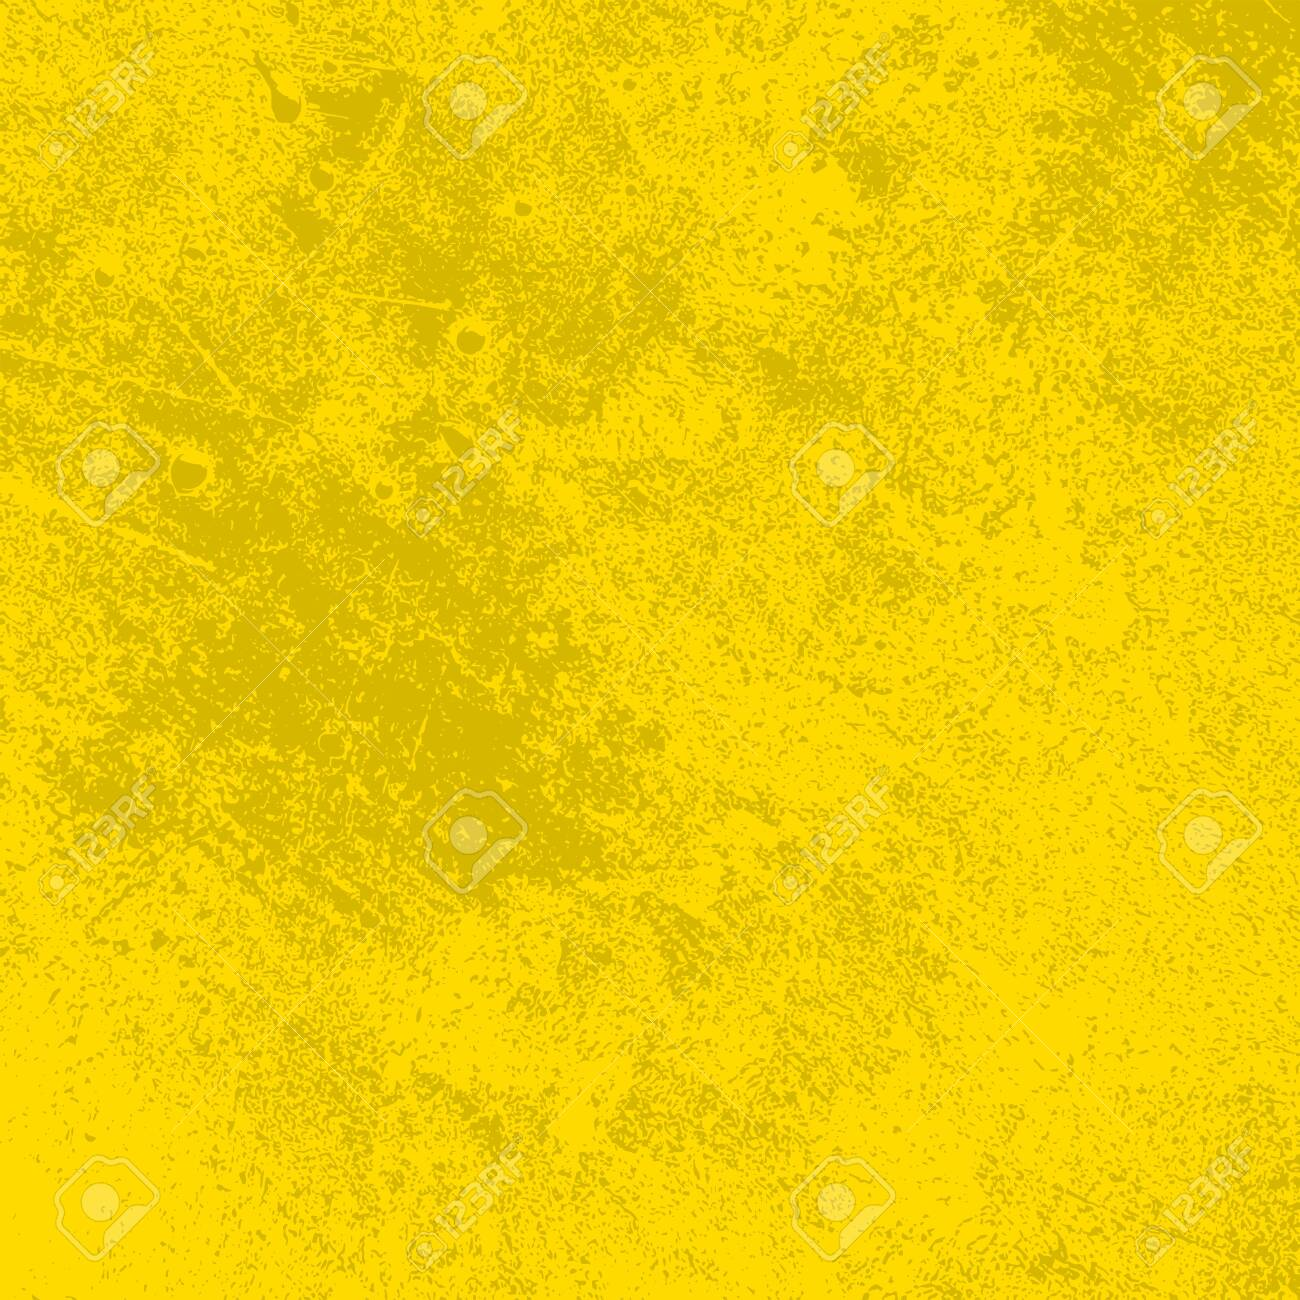 Brushed yellow paint cover. Distress urban used texture. Grunge rough dirty background. Overlay aged grainy messy template. Renovate wall scratched backdrop. Empty aging design element. EPS10 vector - 138233866